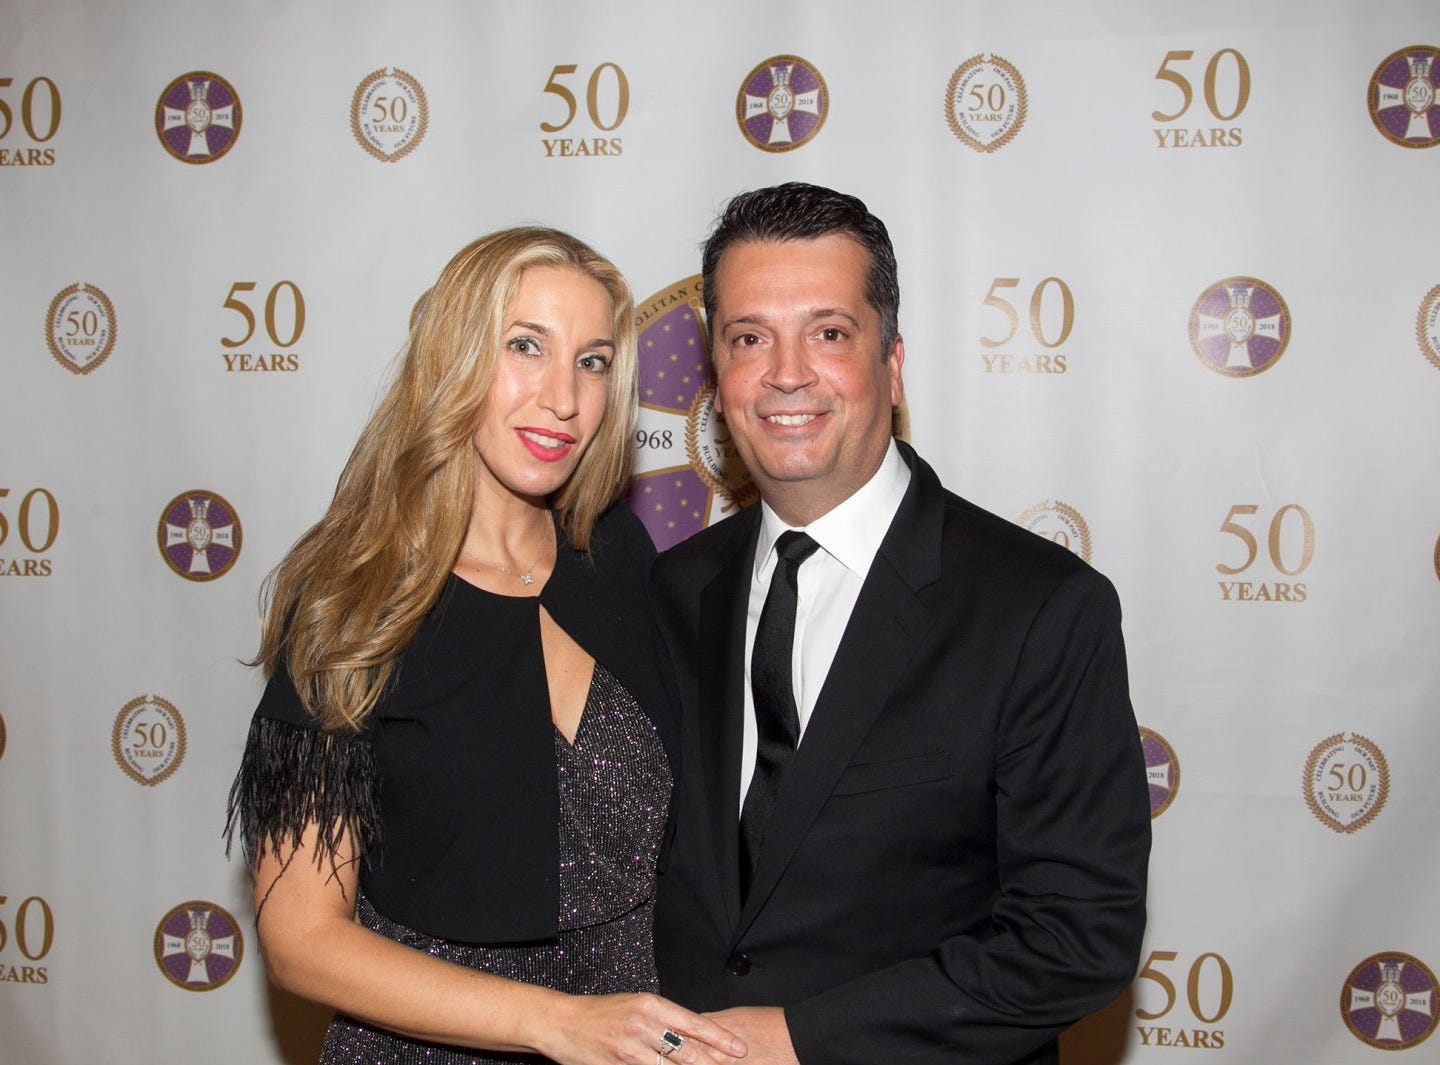 Stephanie and Elias Karlis. Saint John the Theologian 50th Anniversary gala Dinner at The Venetian in Garfield. 10/04/2018